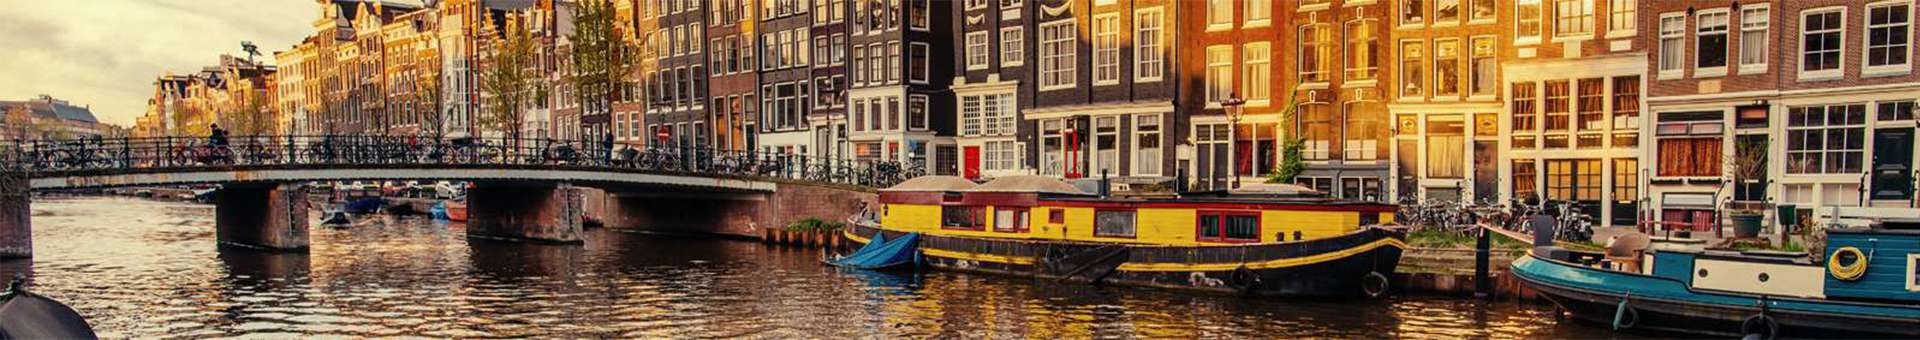 Search Whois information of domain names  .amsterdam